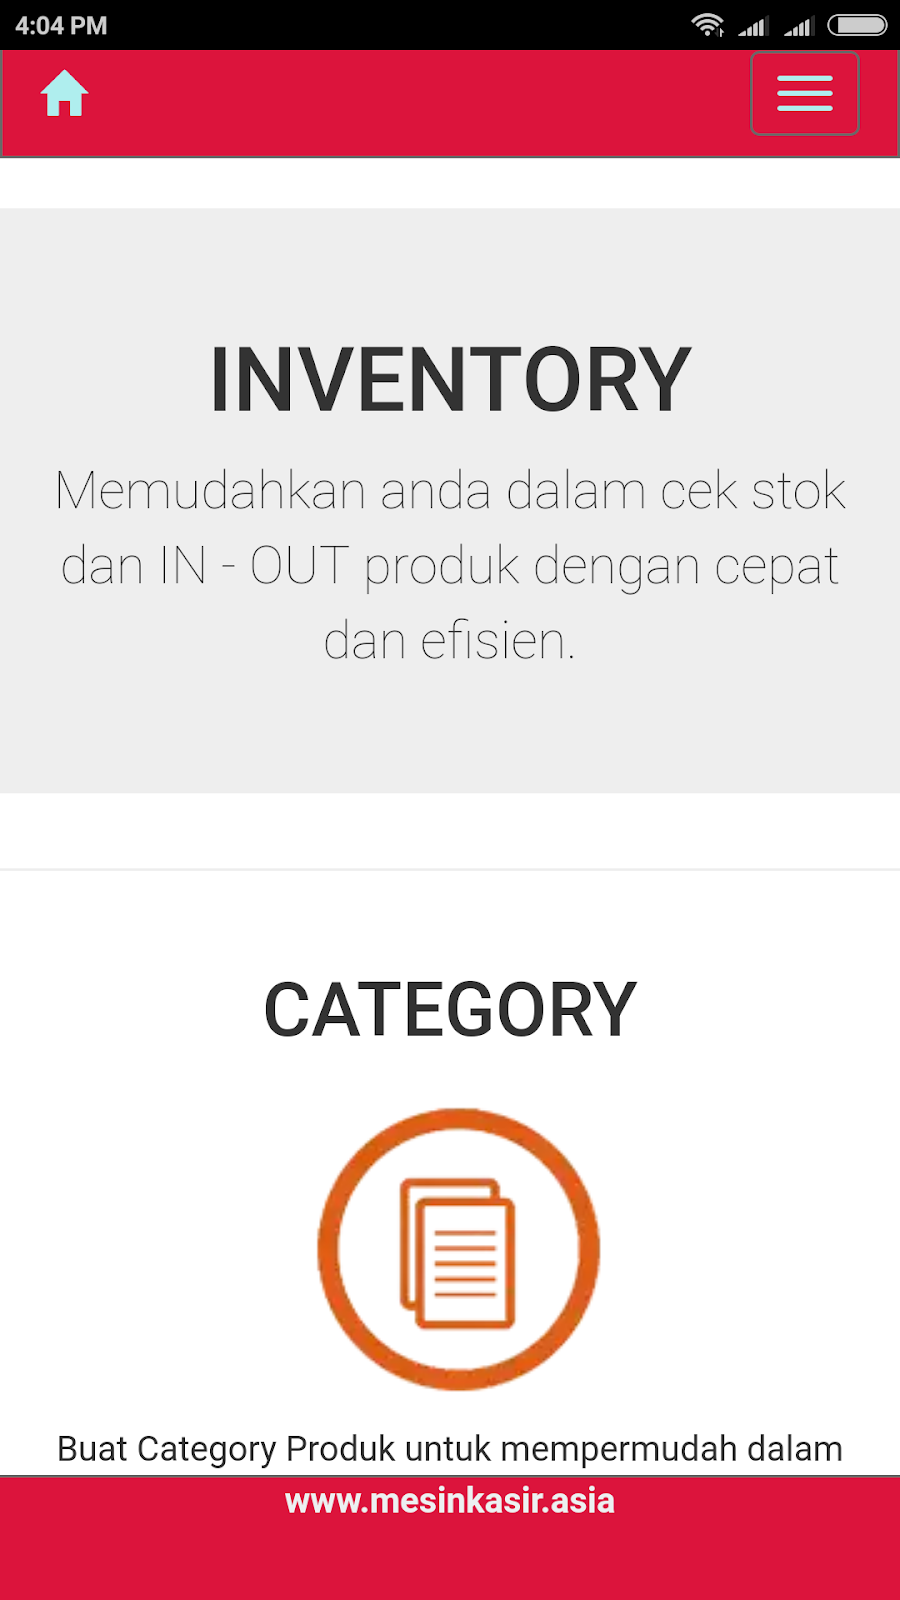 system software inventory gudang in-out stok website bisa diakses via handphone android dan lain lain